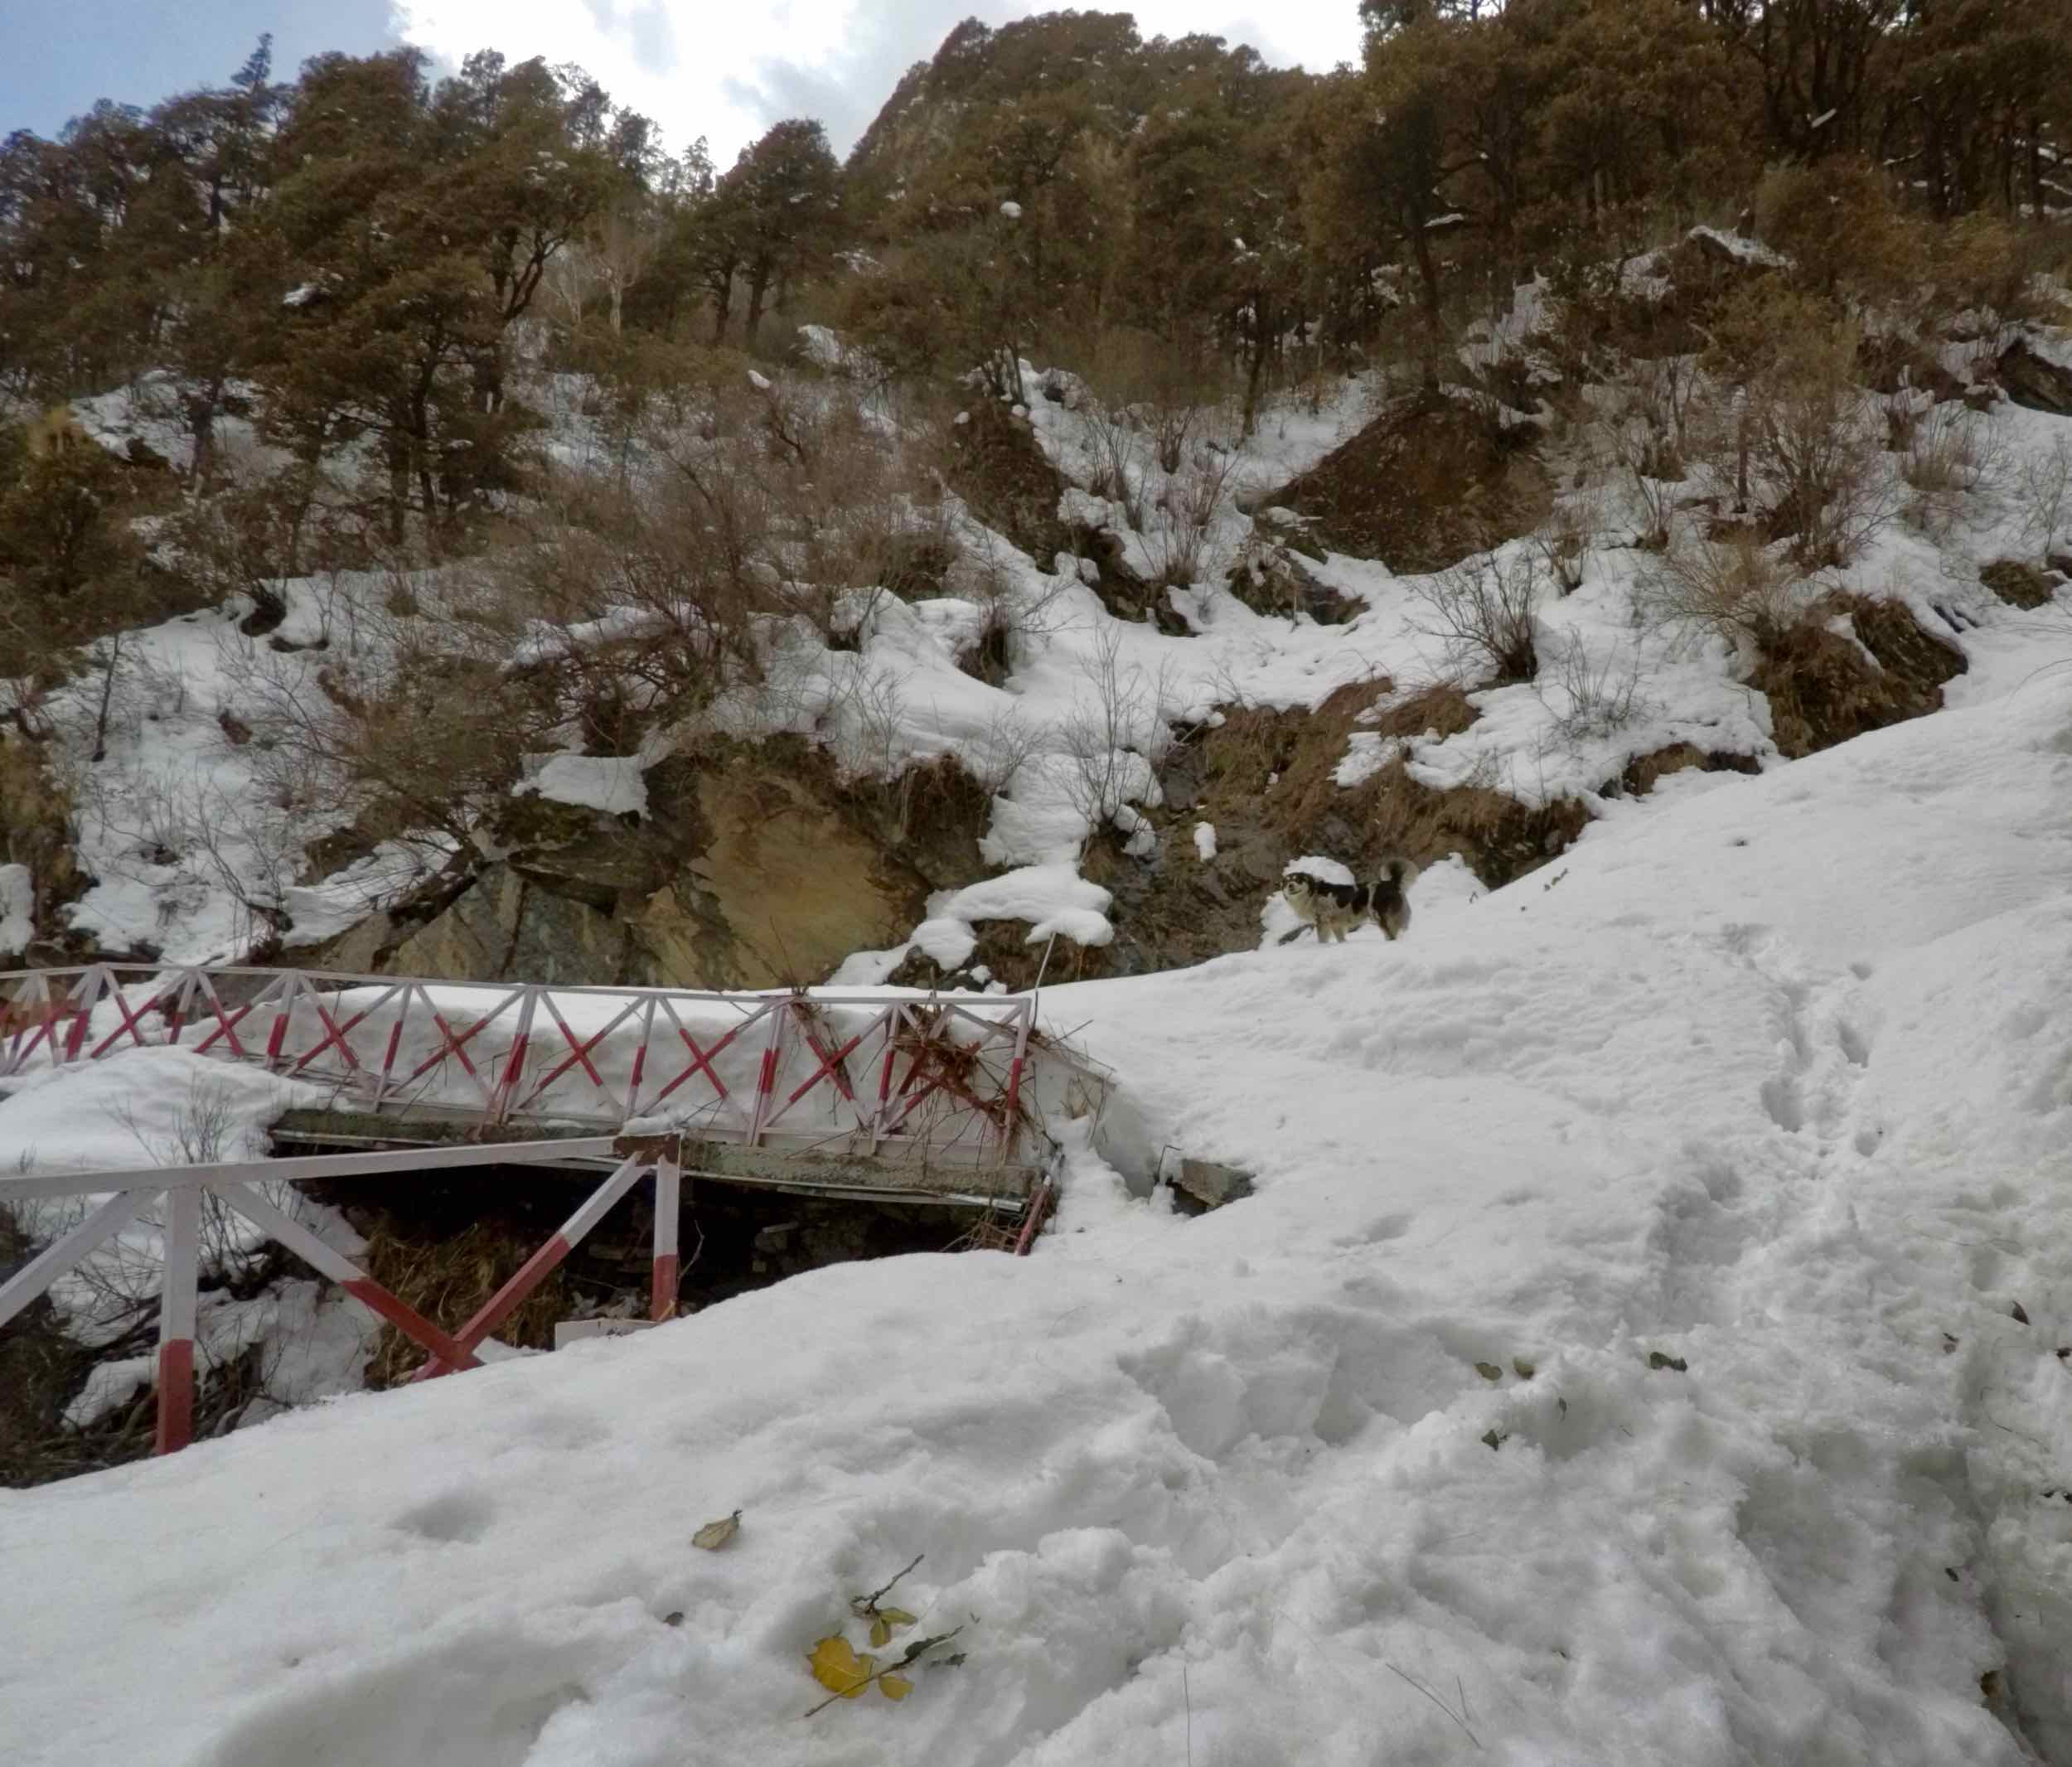 The last 500 metres to Yamunotri were a bit sketchy. The snow covered the railing which made me struggle through this stretch. I averaged just over 1kmph on this stretch.